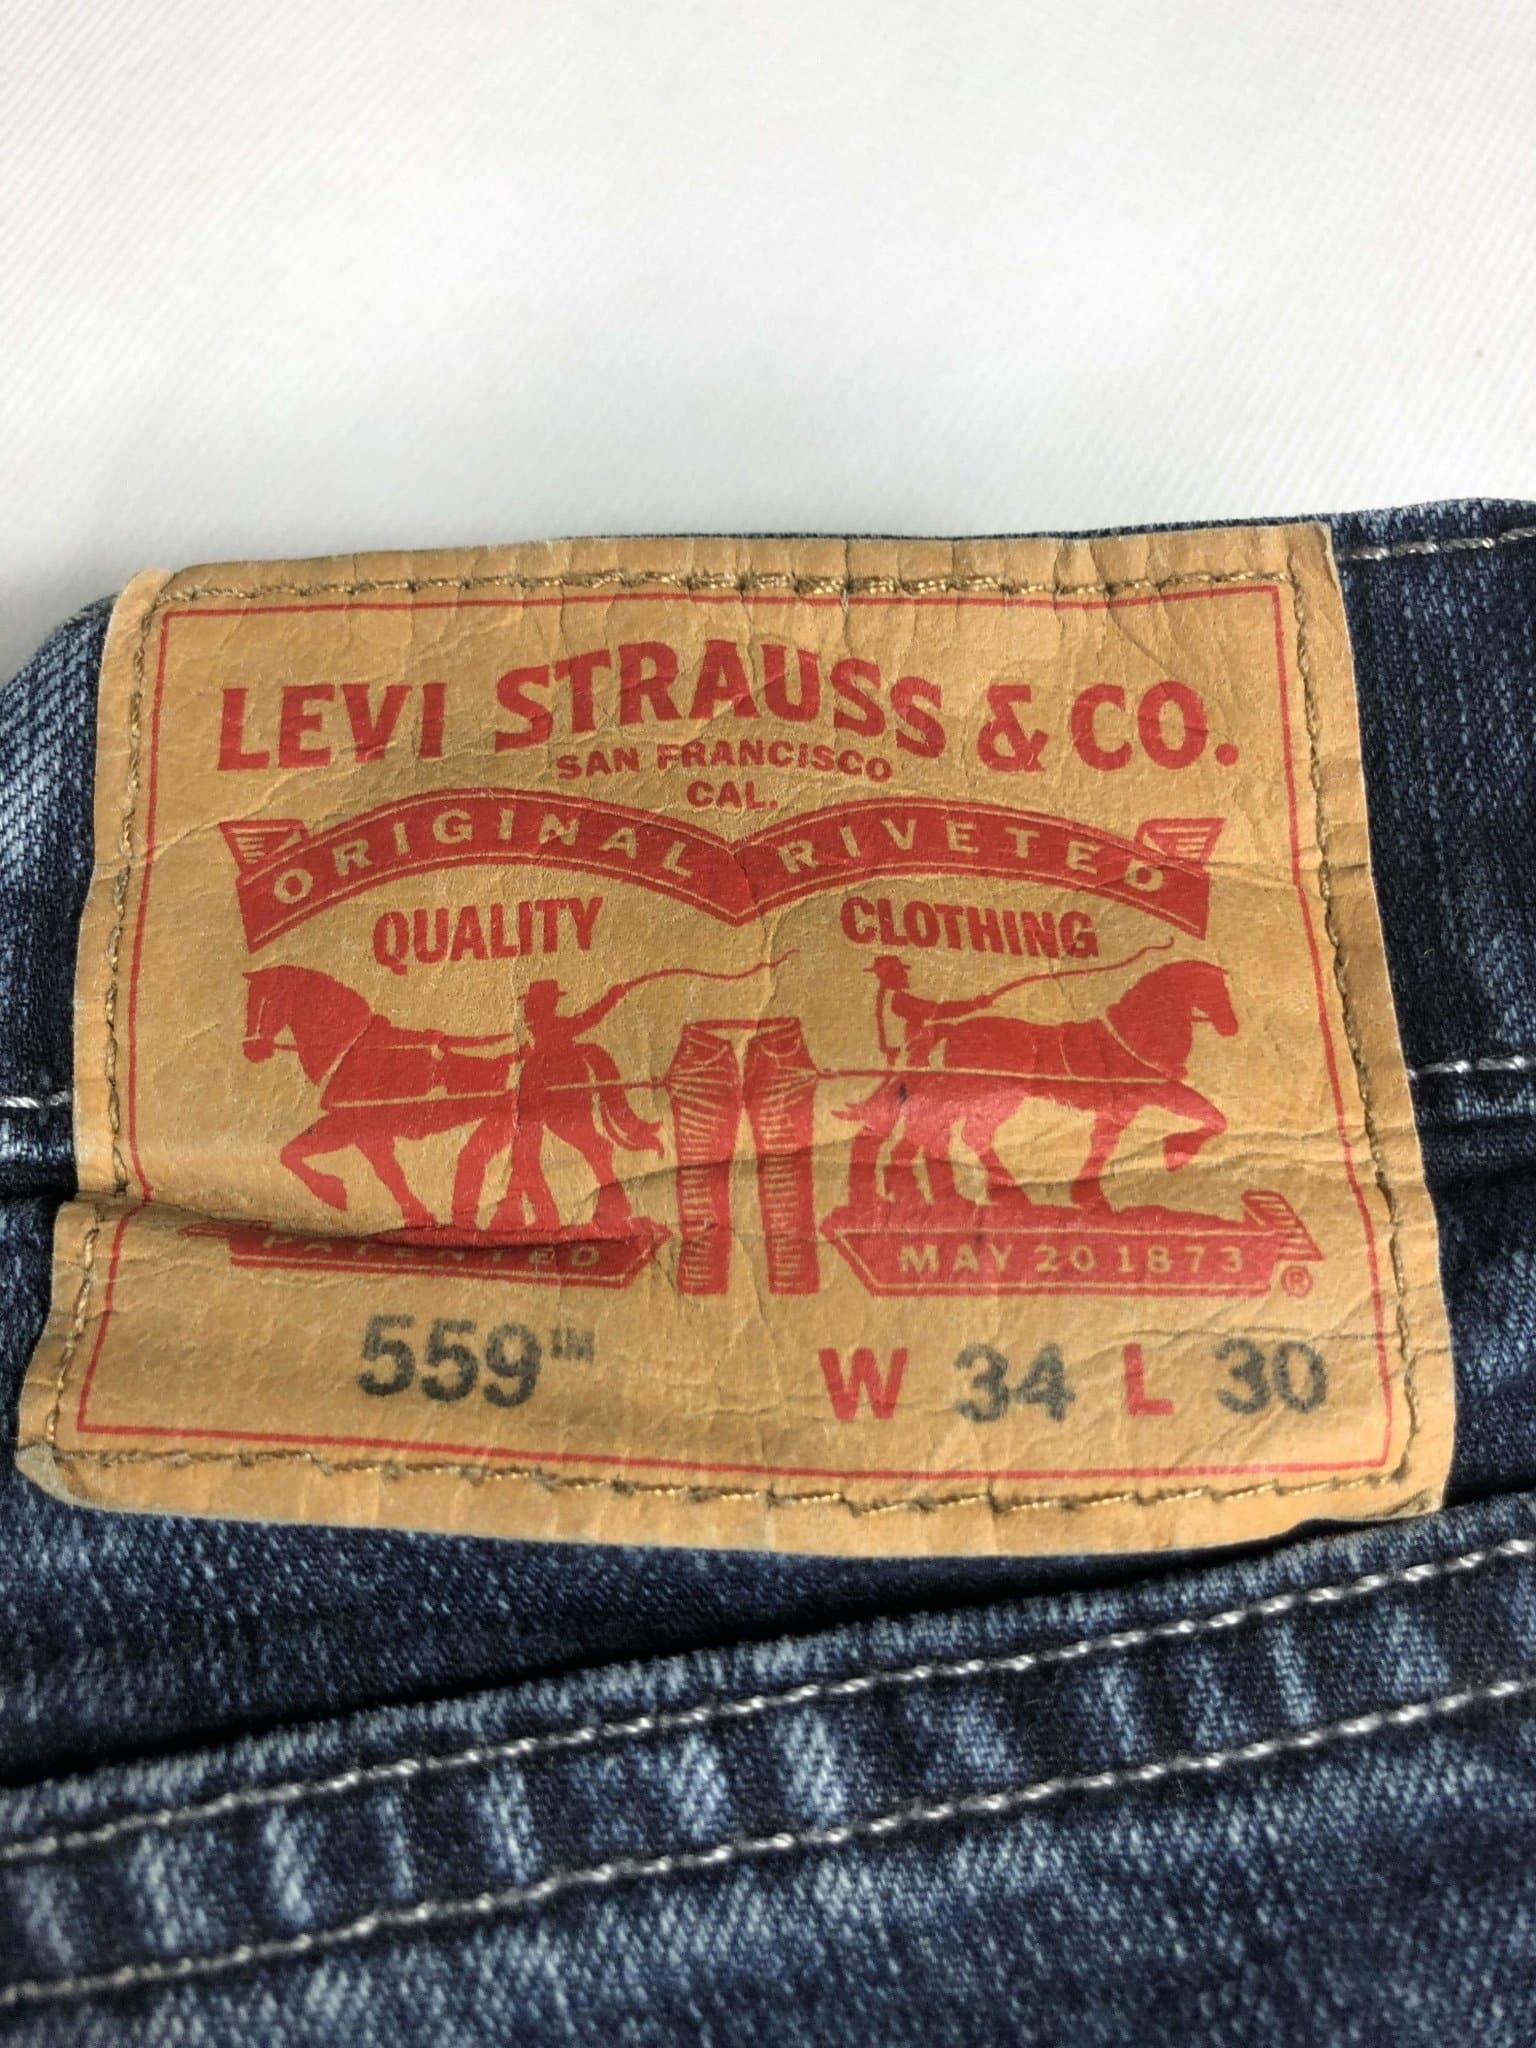 Vintage Levi's 559 Jeans W34 L30 (Z21) - Discounted Deals UK